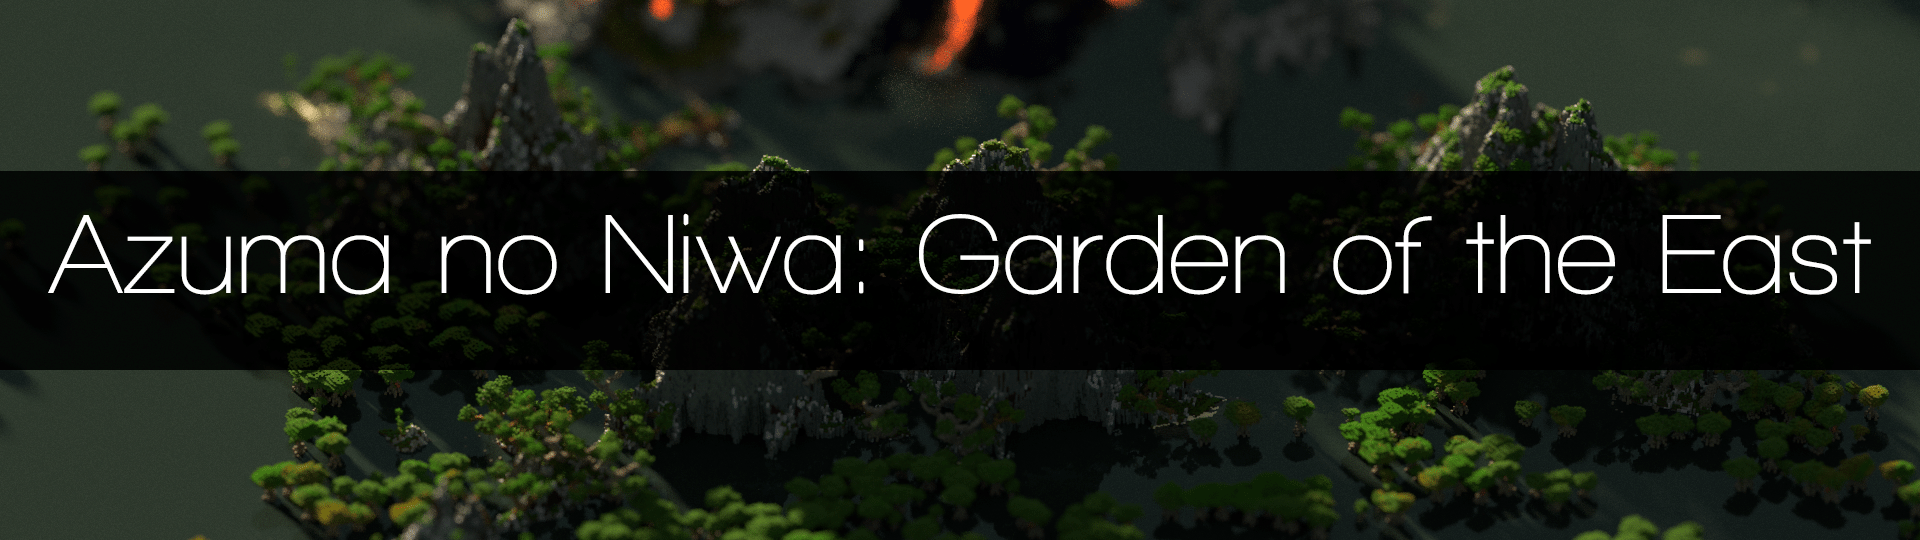 Azuma no Niwa: Garden of the East - KVb2R9Z